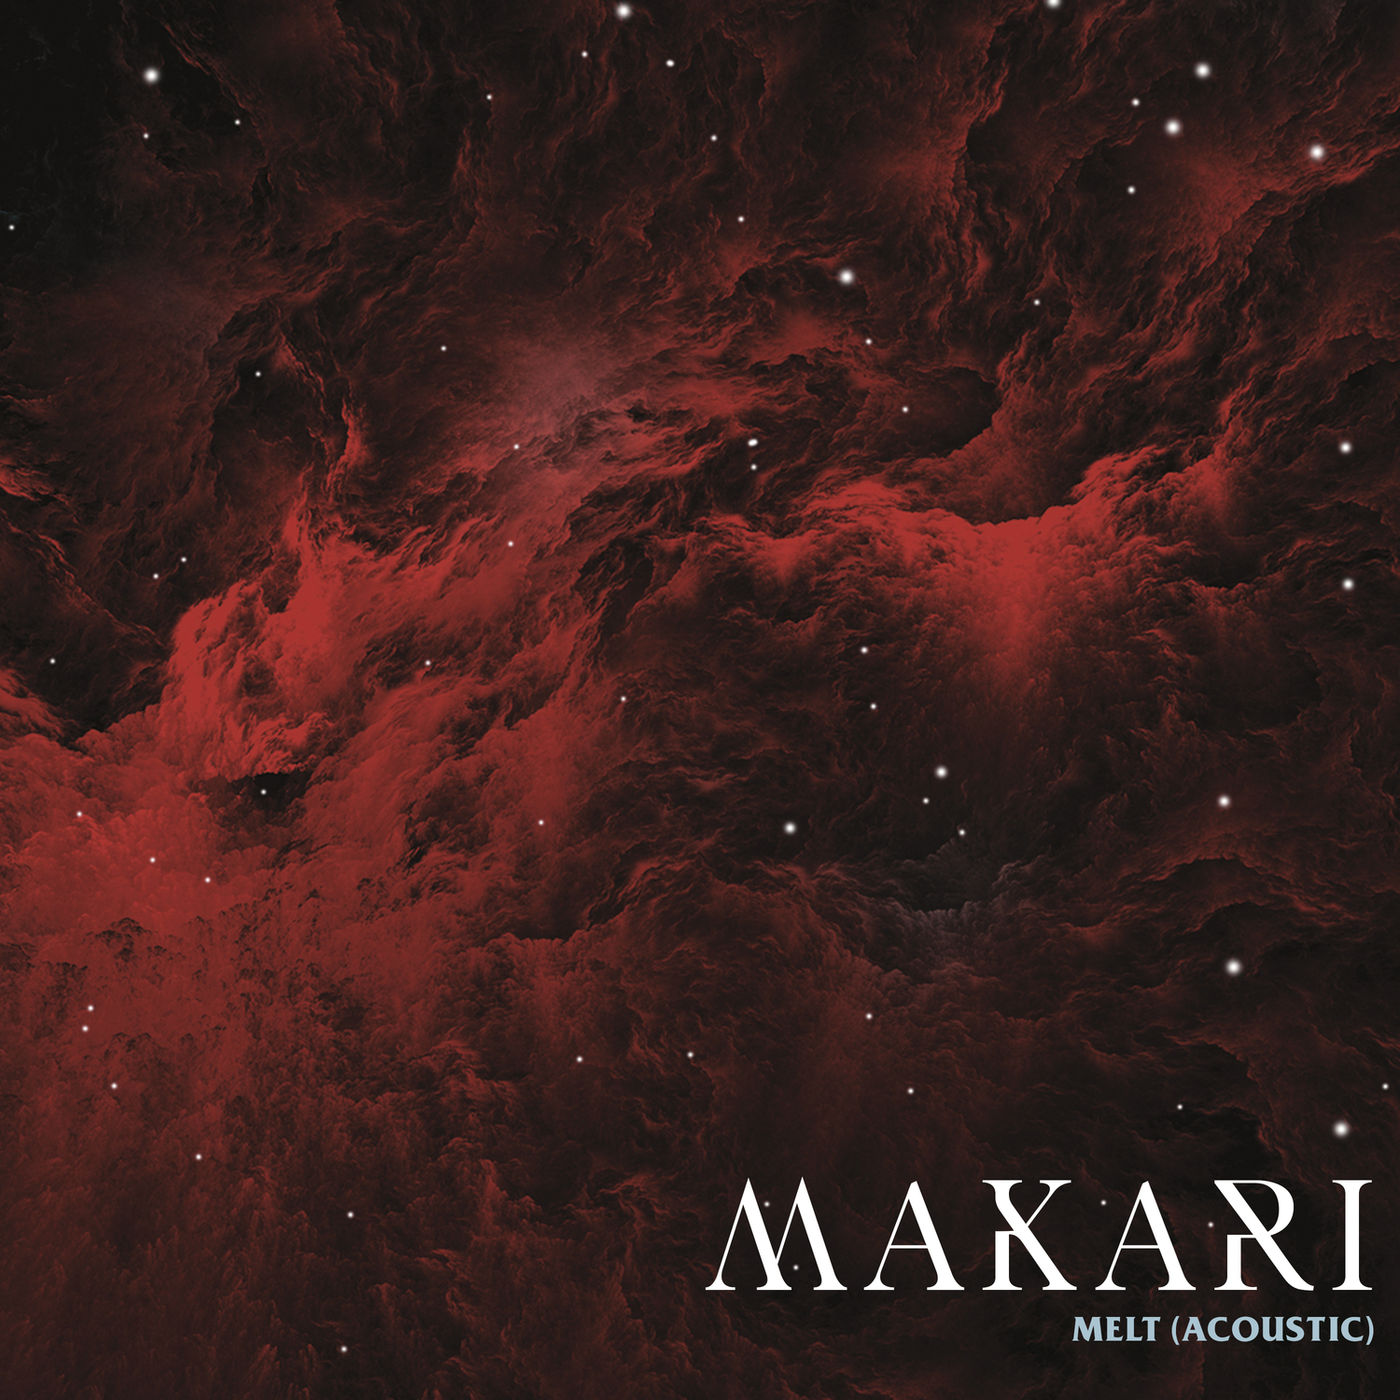 Makari - Melt (acoustic) [single] (2020)